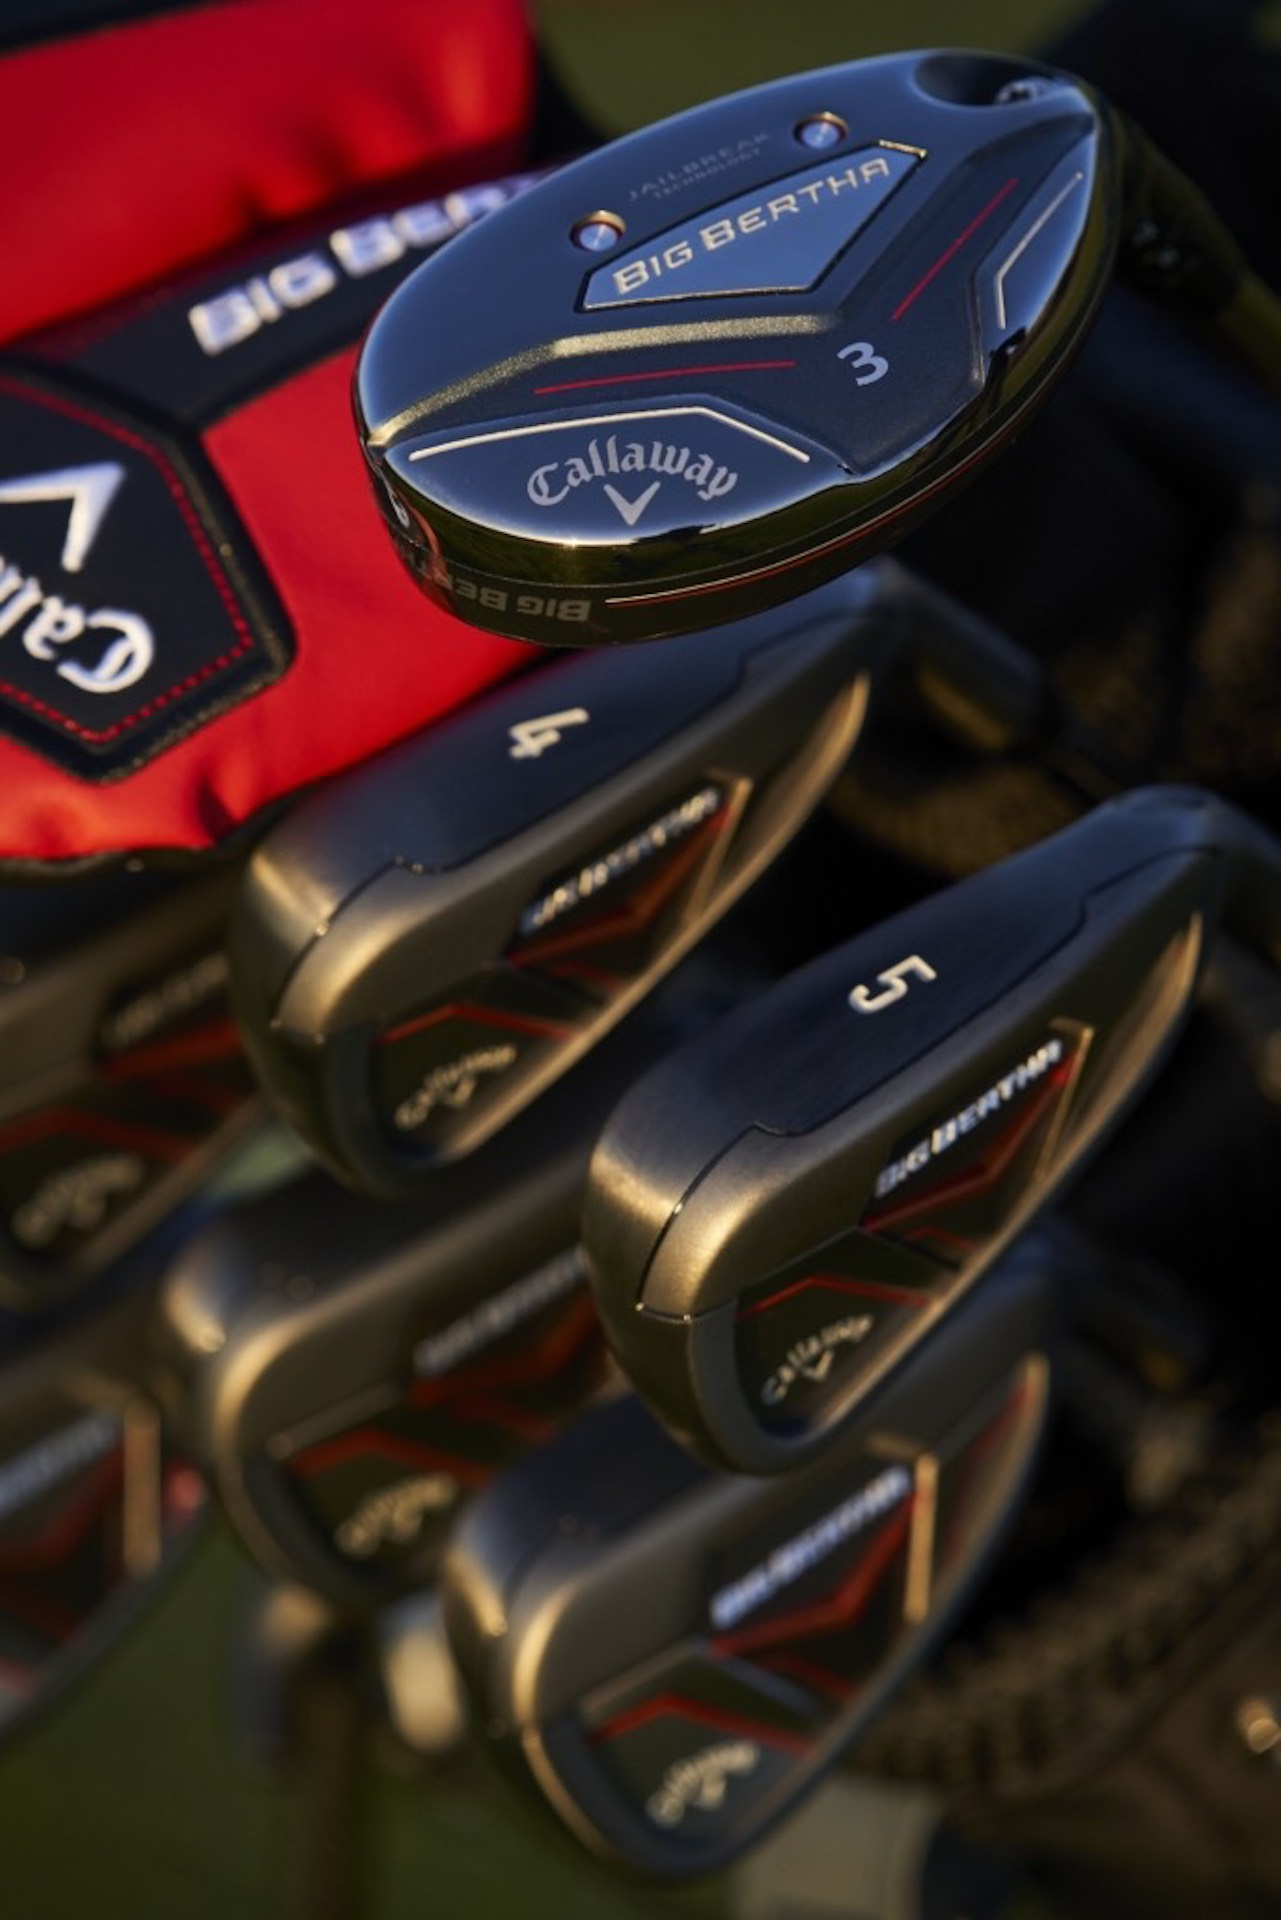 New 2019 Big Bertha Irons and hybrids launched